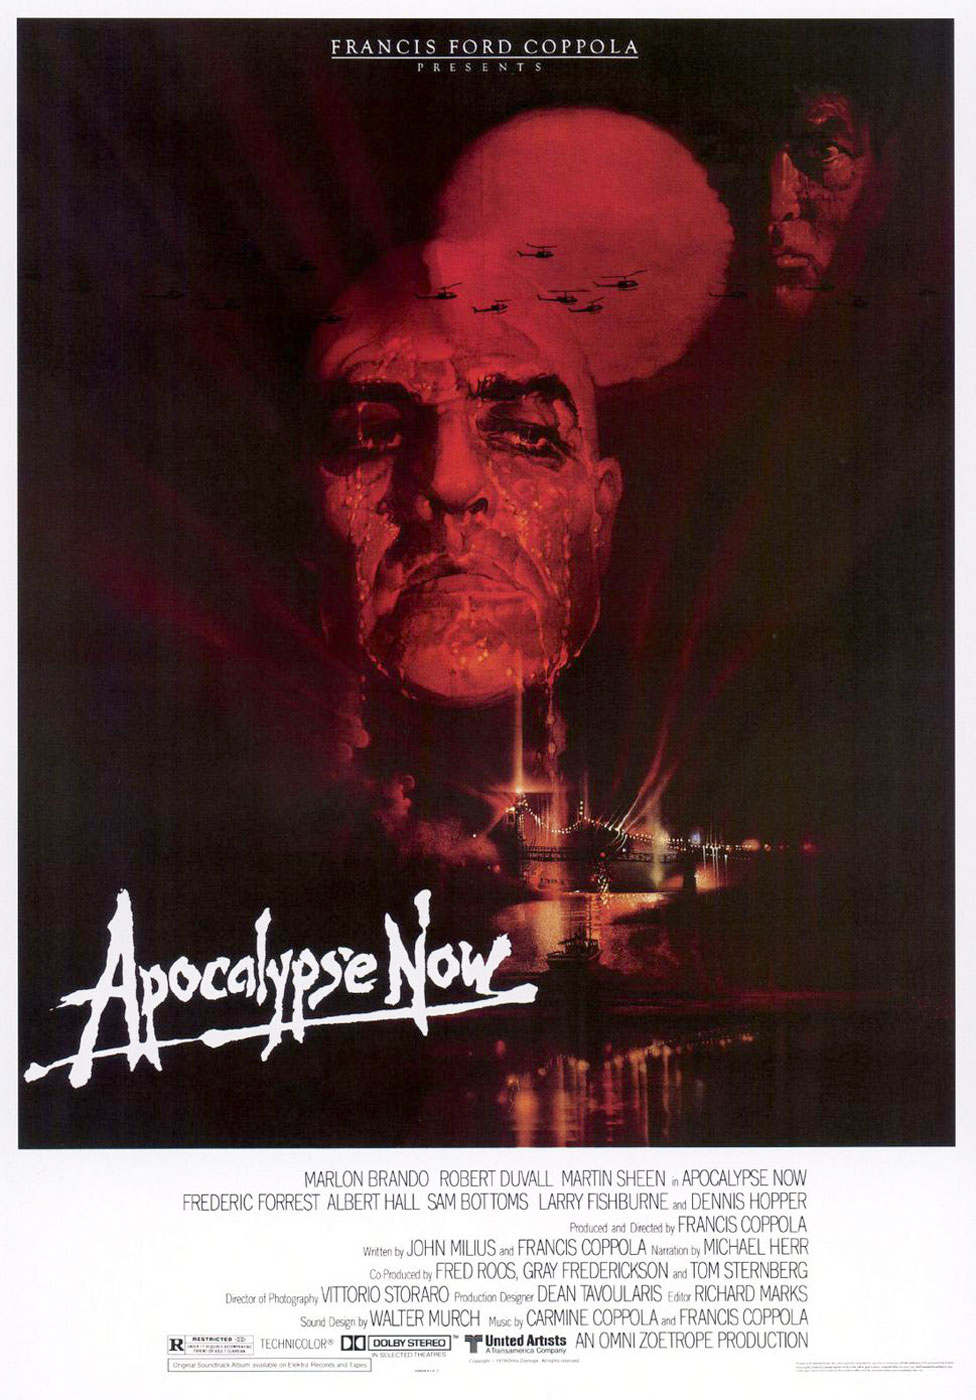 Apocalypse Now - Francis Ford Coppola (1979)